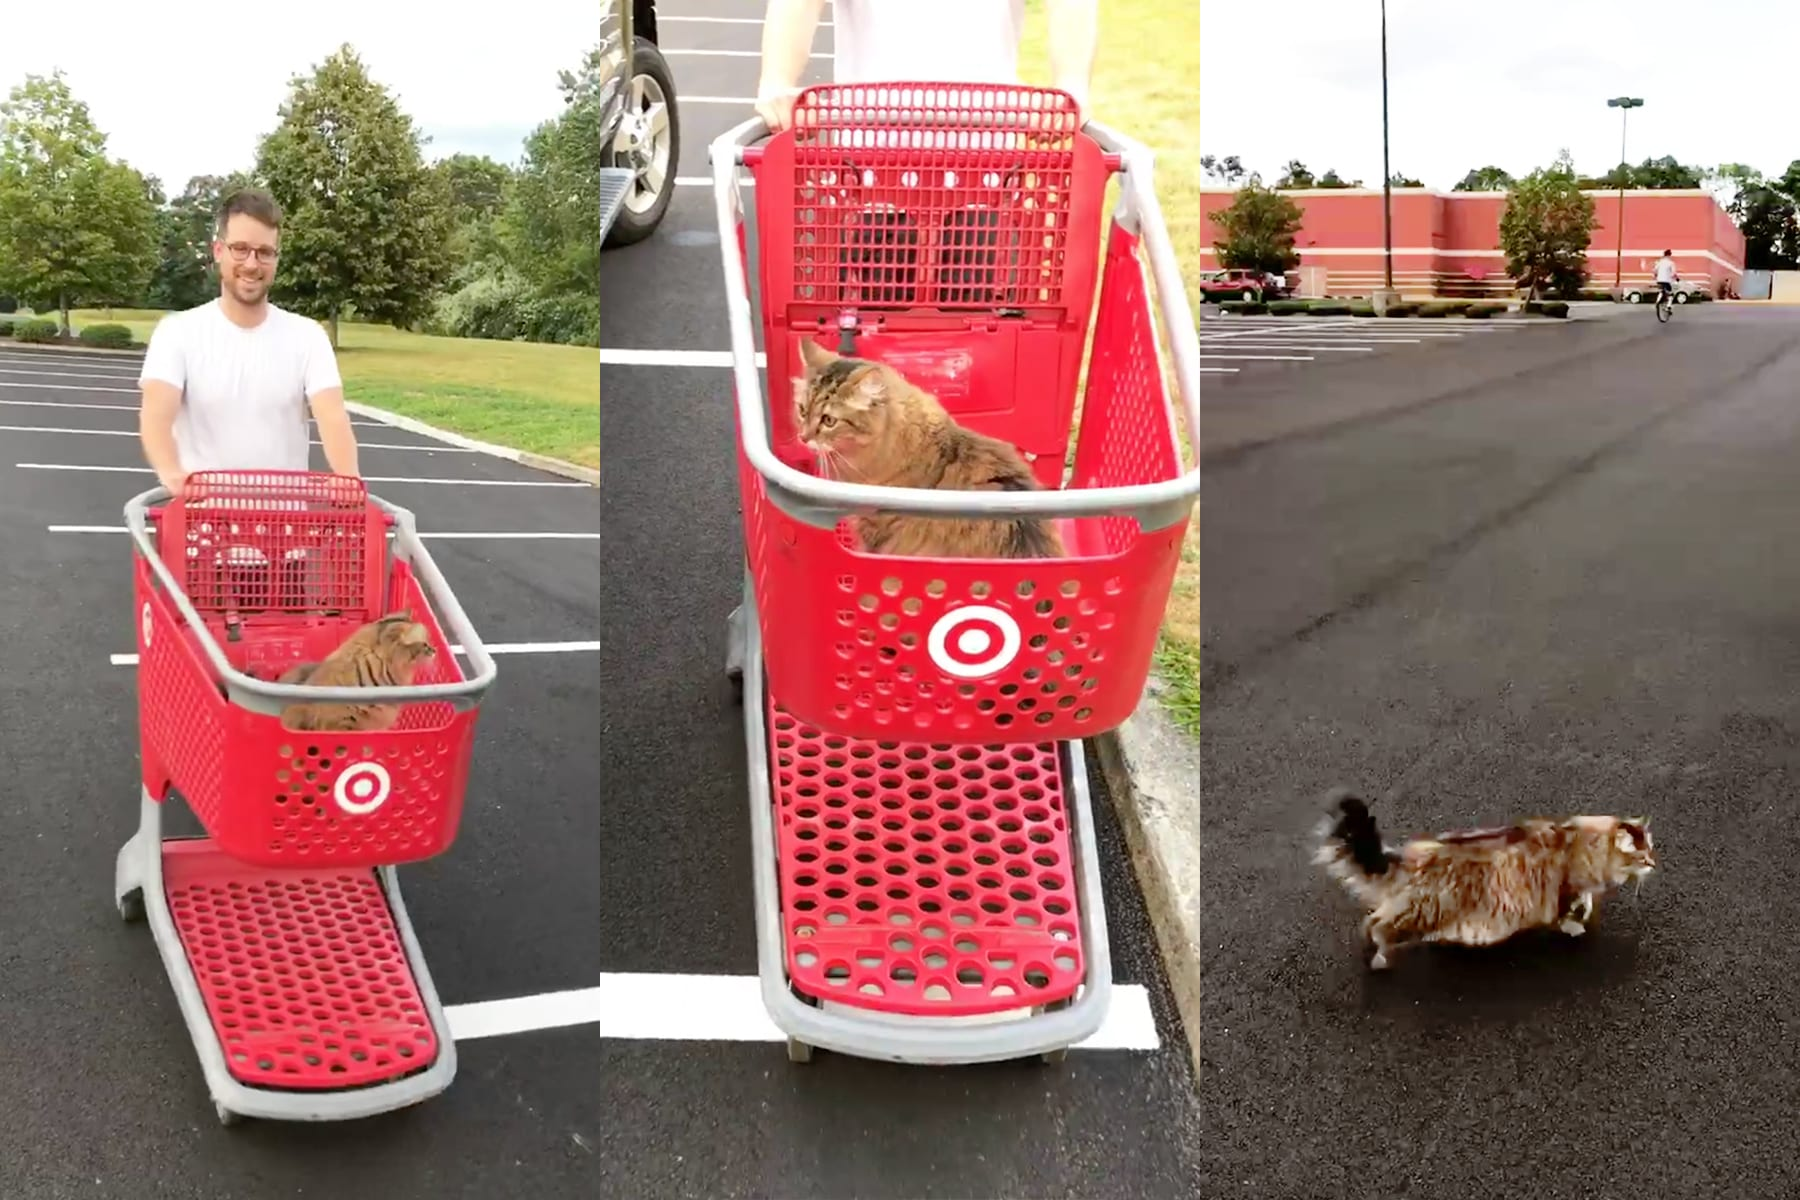 05-RI-journey-targetkitty.jpg